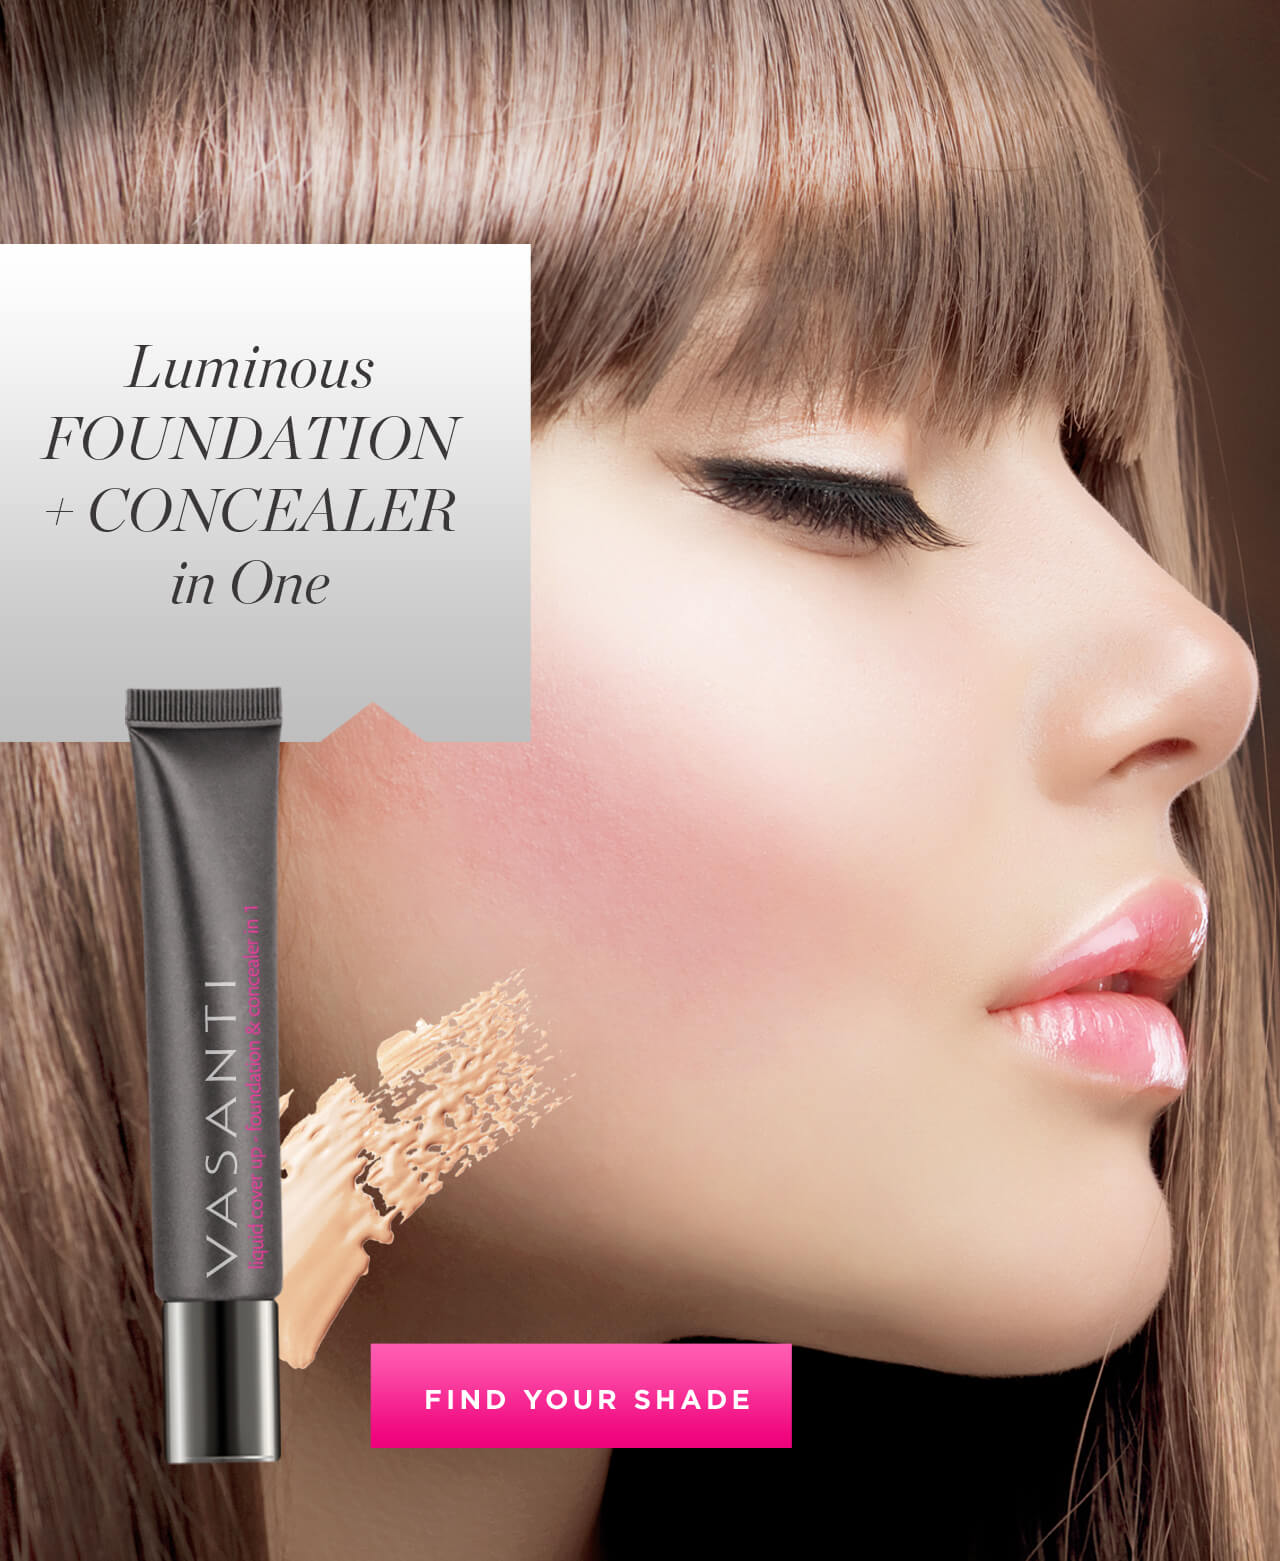 Luminous Foundation + Concealer in One